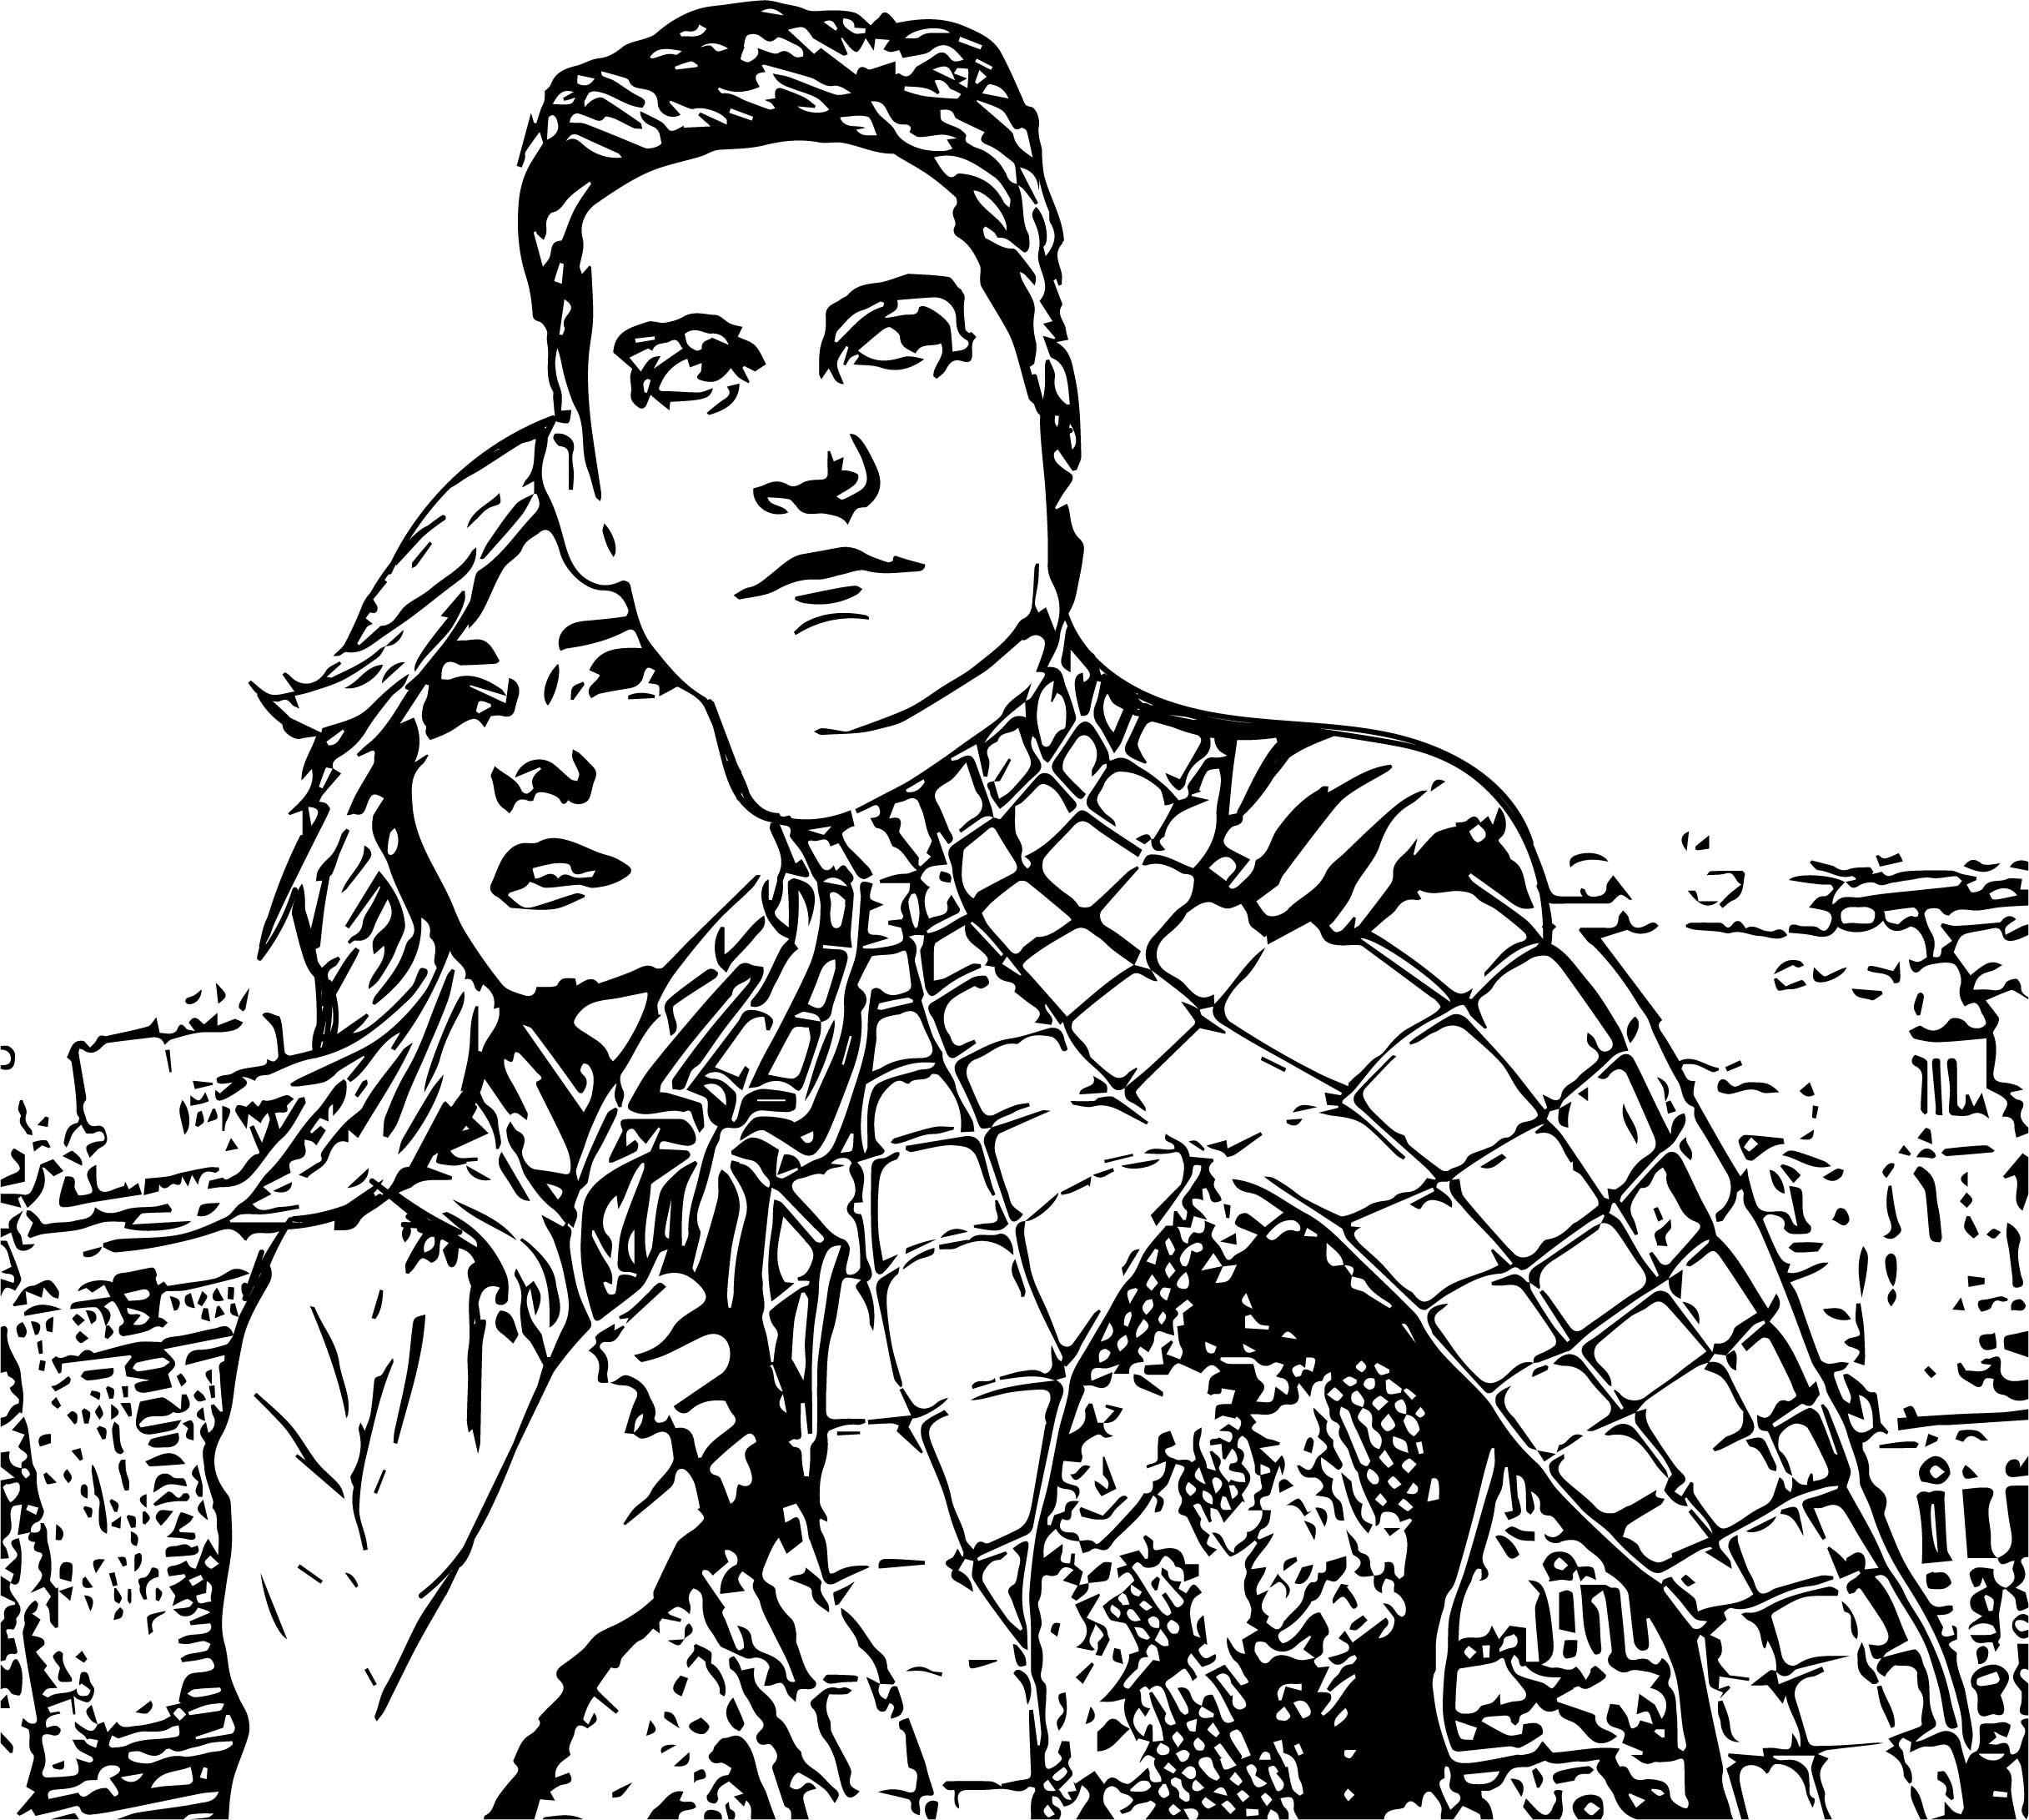 man coloring page - spider man in movie coloring page